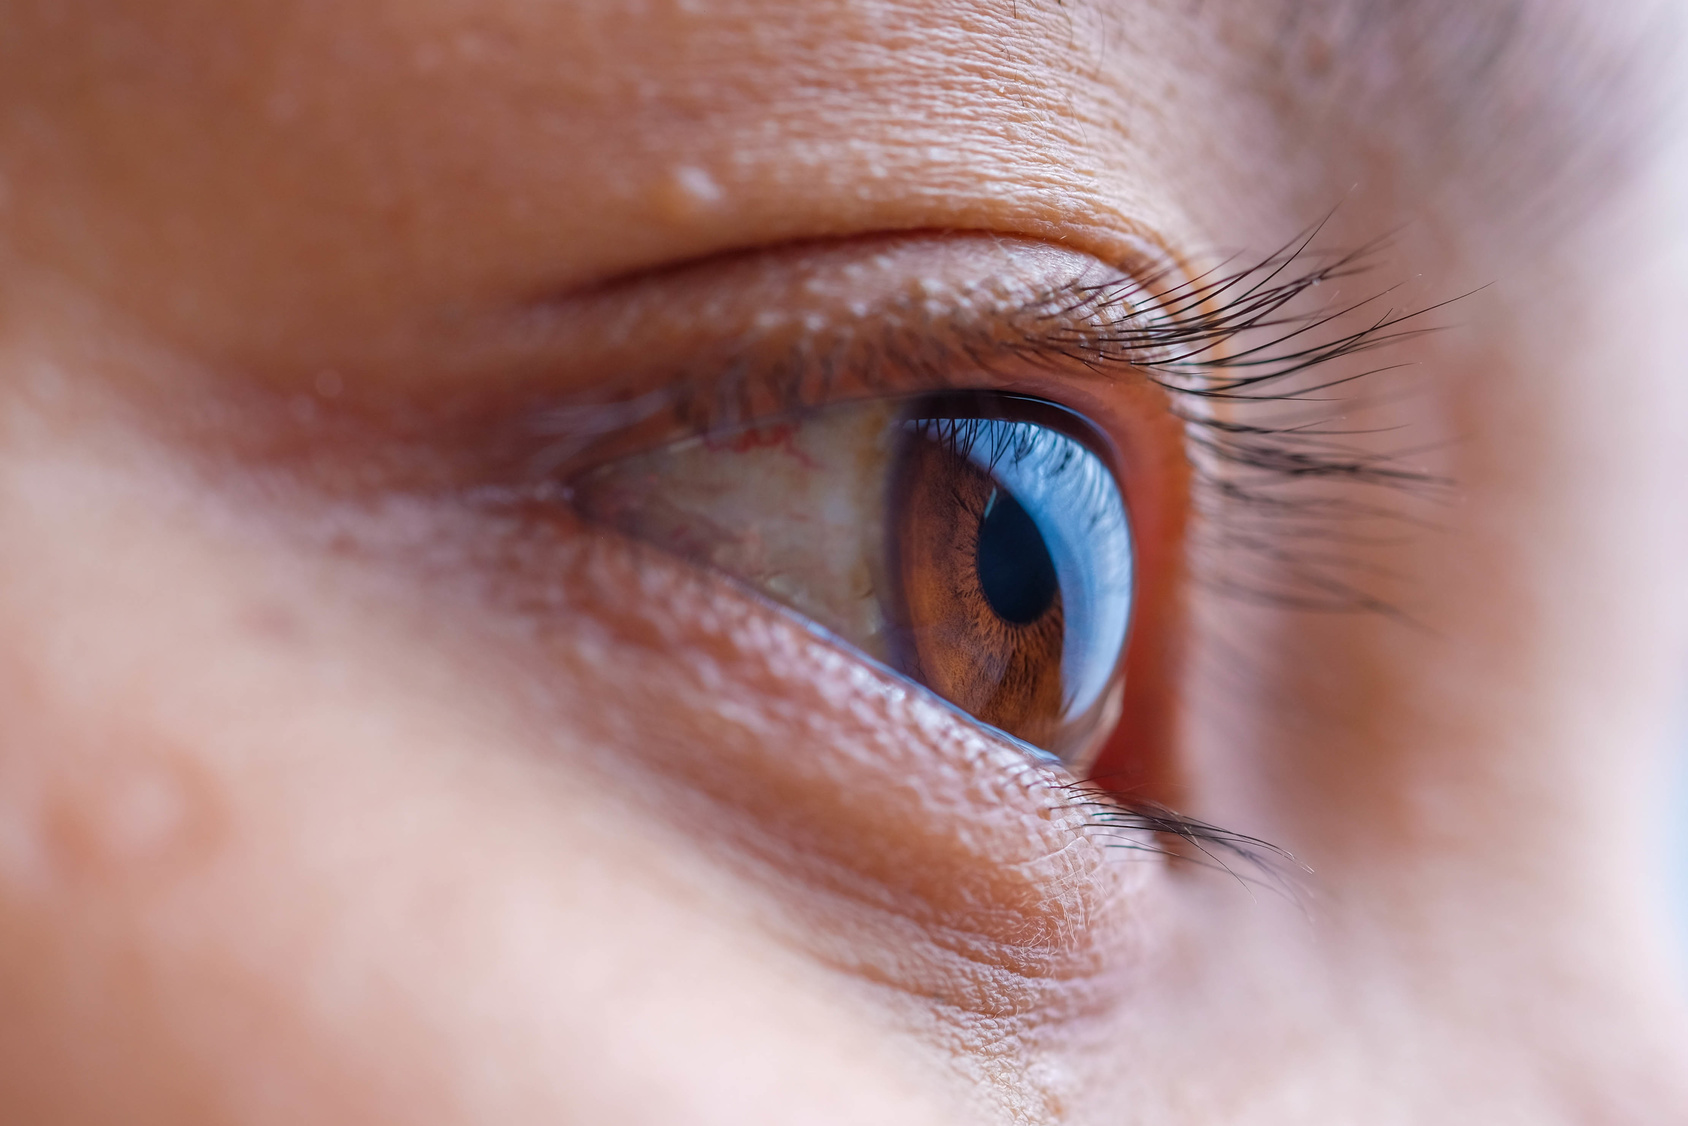 Could Your Watery Eyes Be A Sign Of A Blocked Tear Duct Focus A Health Blog From Mass Eye And Ear